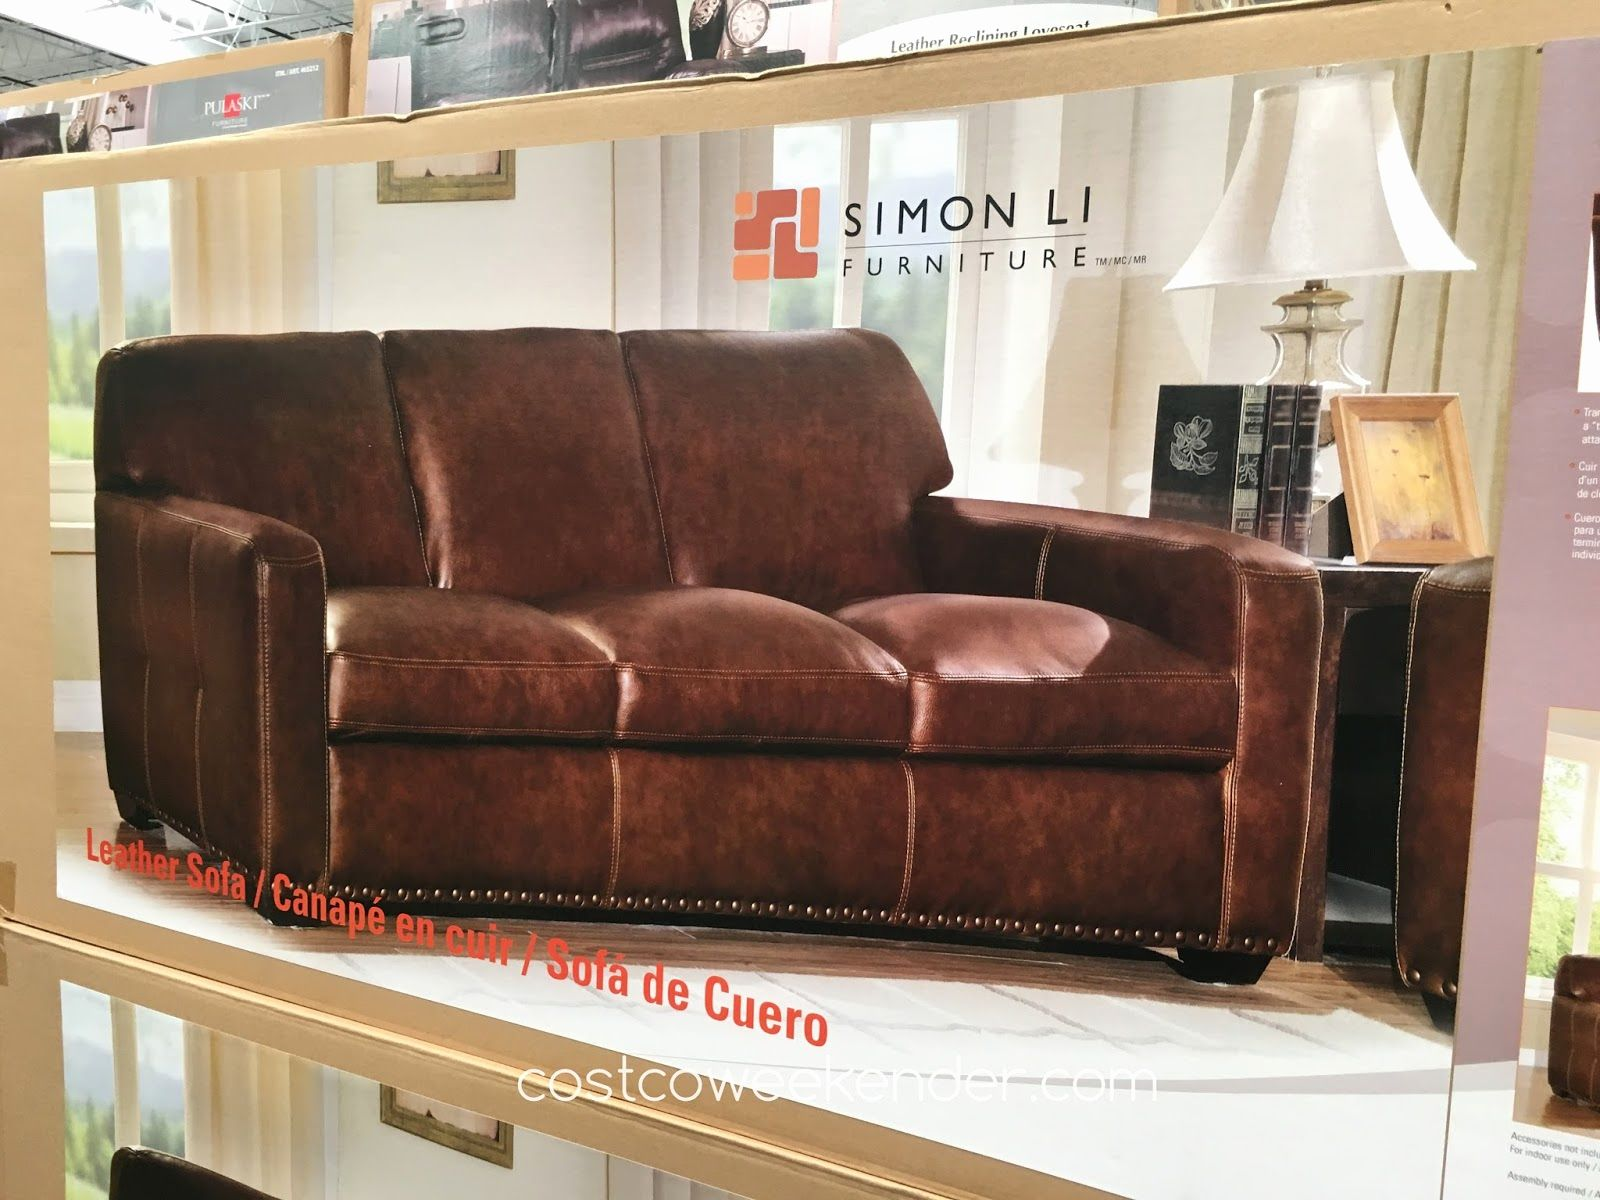 Awesome Natuzzi Leather Sofa Costco Photographs Natuzzi Leather Sofa Costco  Inspirational Couches Costco Black Leather Sofa